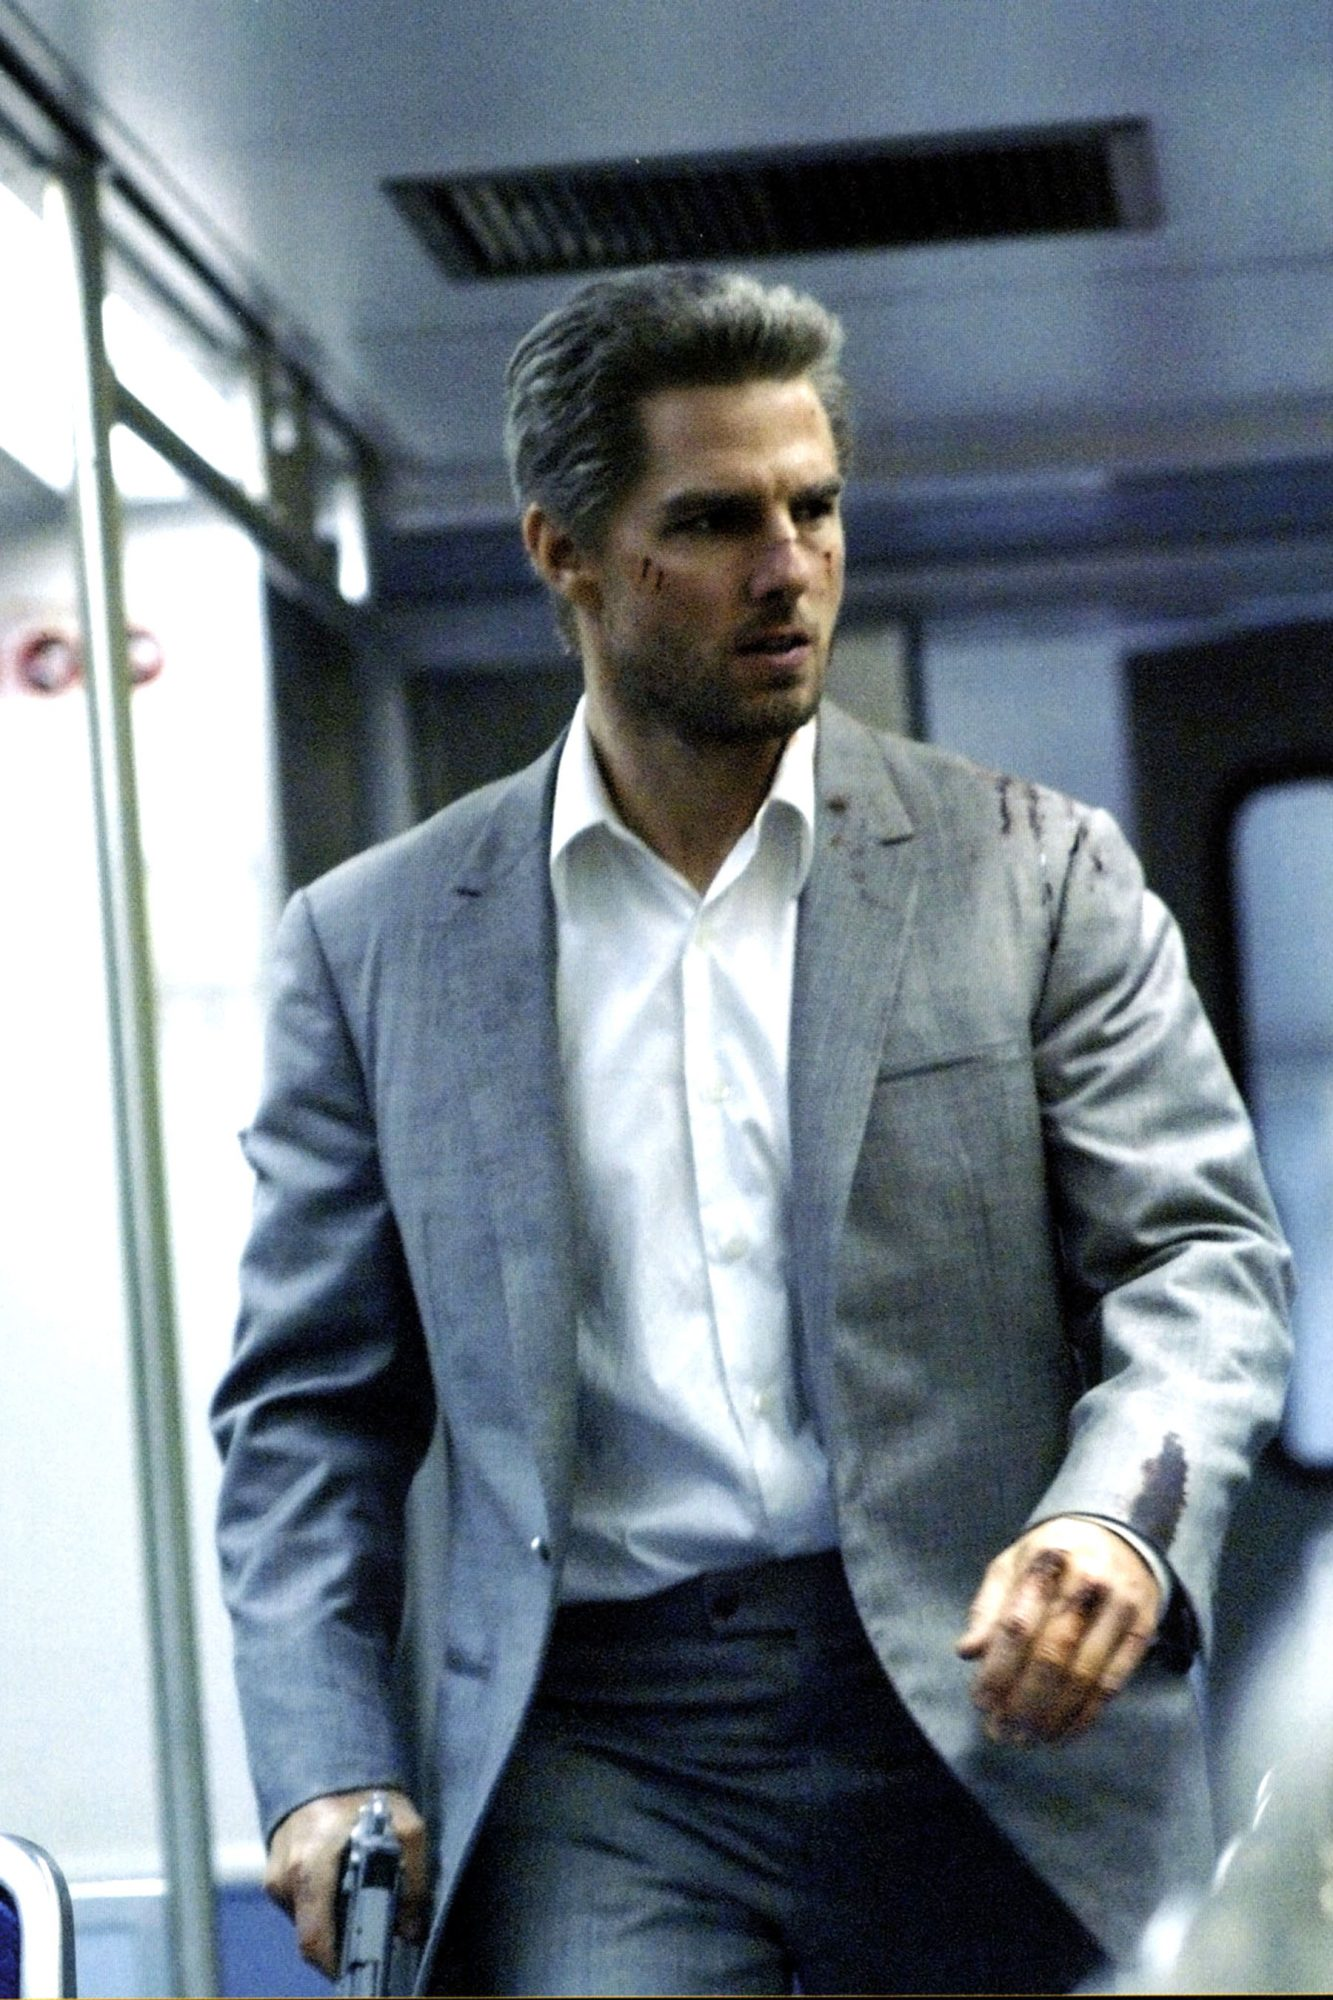 7. Collateral (2004)